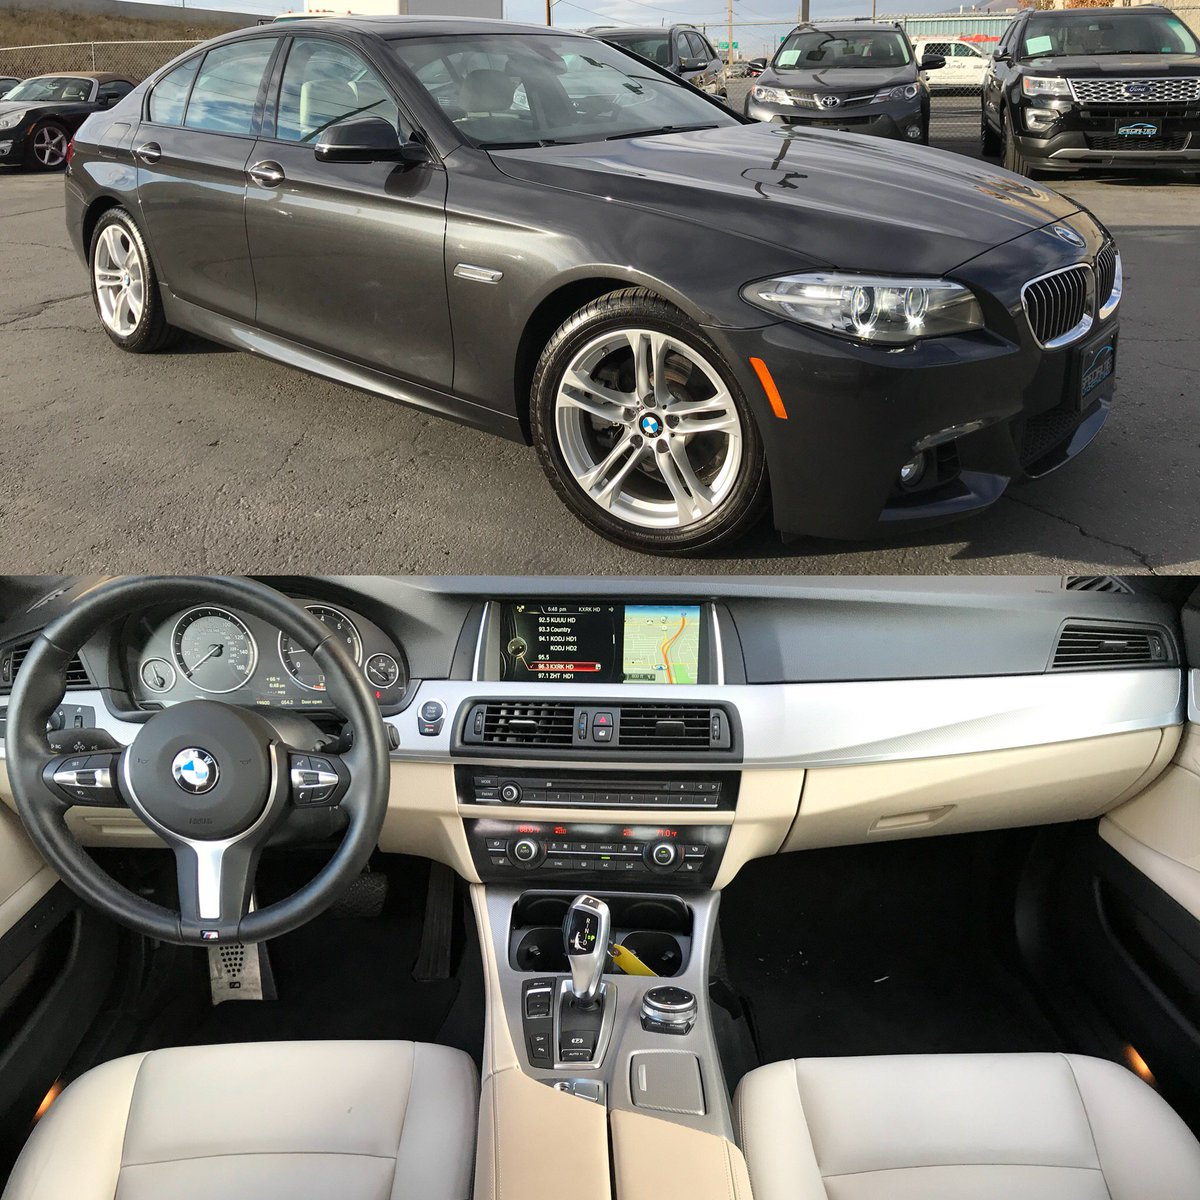 hight resolution of specialties auto on twitter gray 2014 bmw 528i xdrive m sport with only 19k miles forsale specialties specialtiesauto utahcars bmw 528xi xdrive